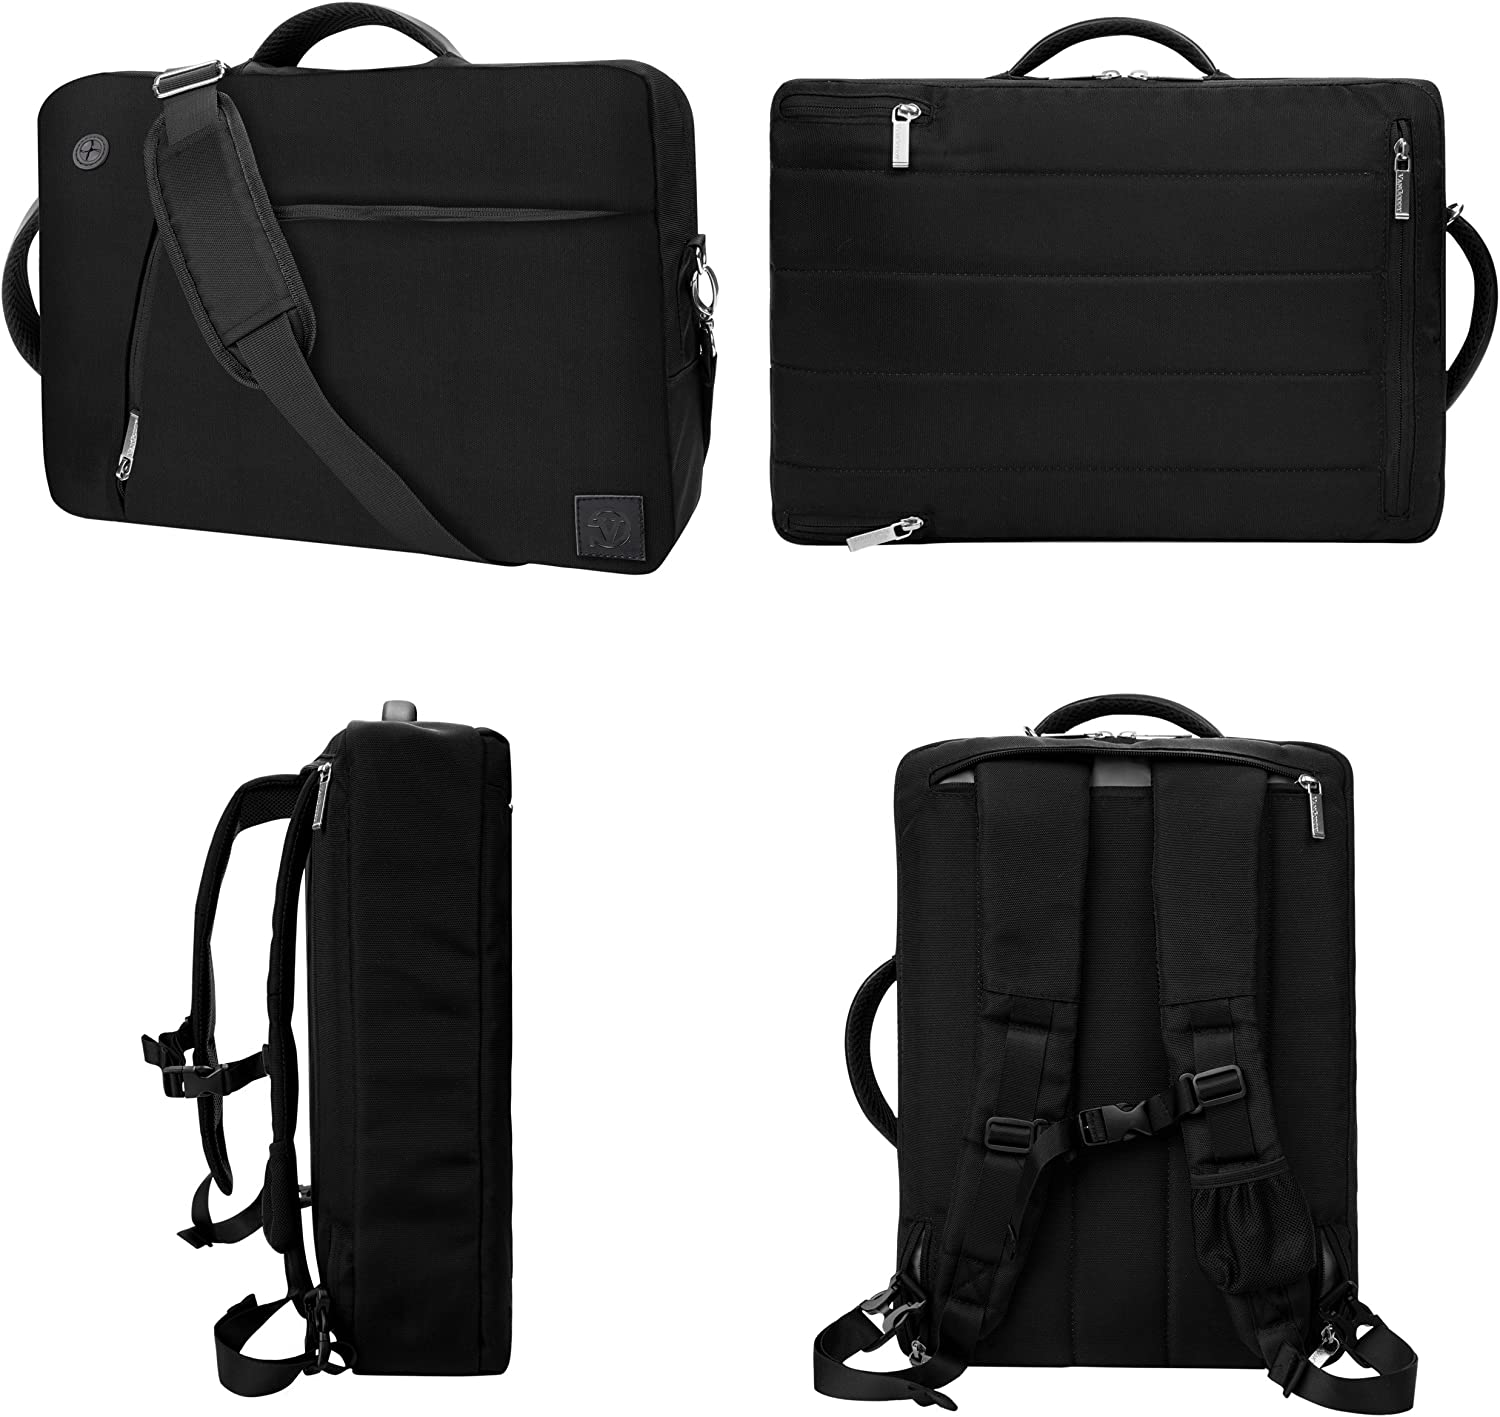 Galaxy Book ChromeBook Black 10 to 12 inch Convertible Laptop Bag for Samsung Galaxy Tab S6 S5e A S4 10.5